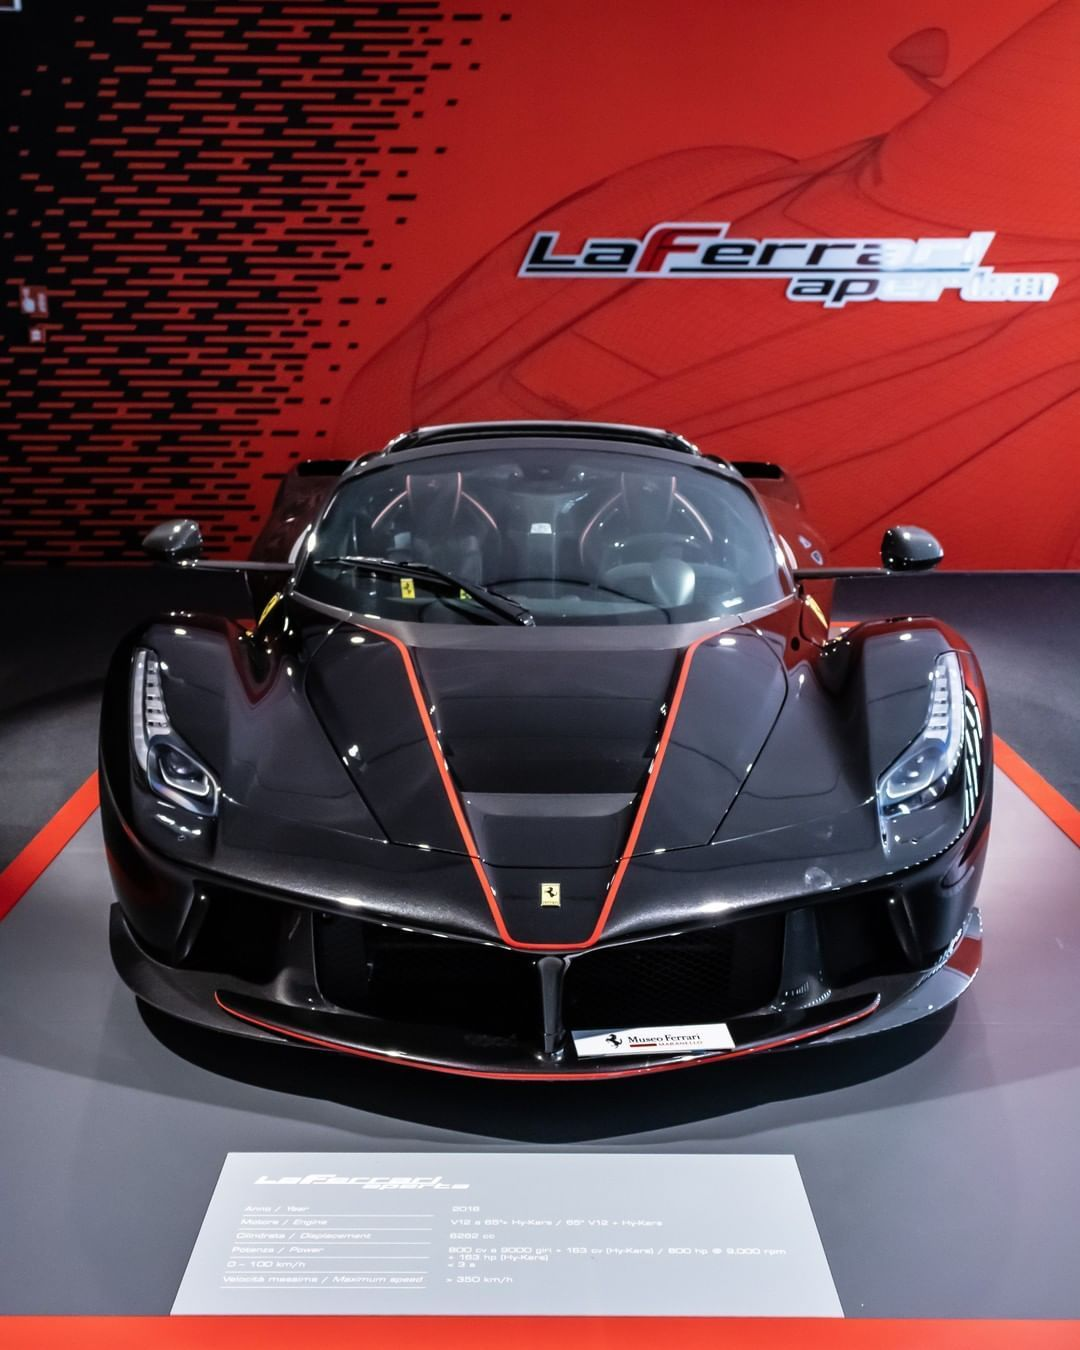 Pin By Rafael Ramirez On Supercars In 2020 Super Cars Ferrari Laferrari Sports Cars Luxury